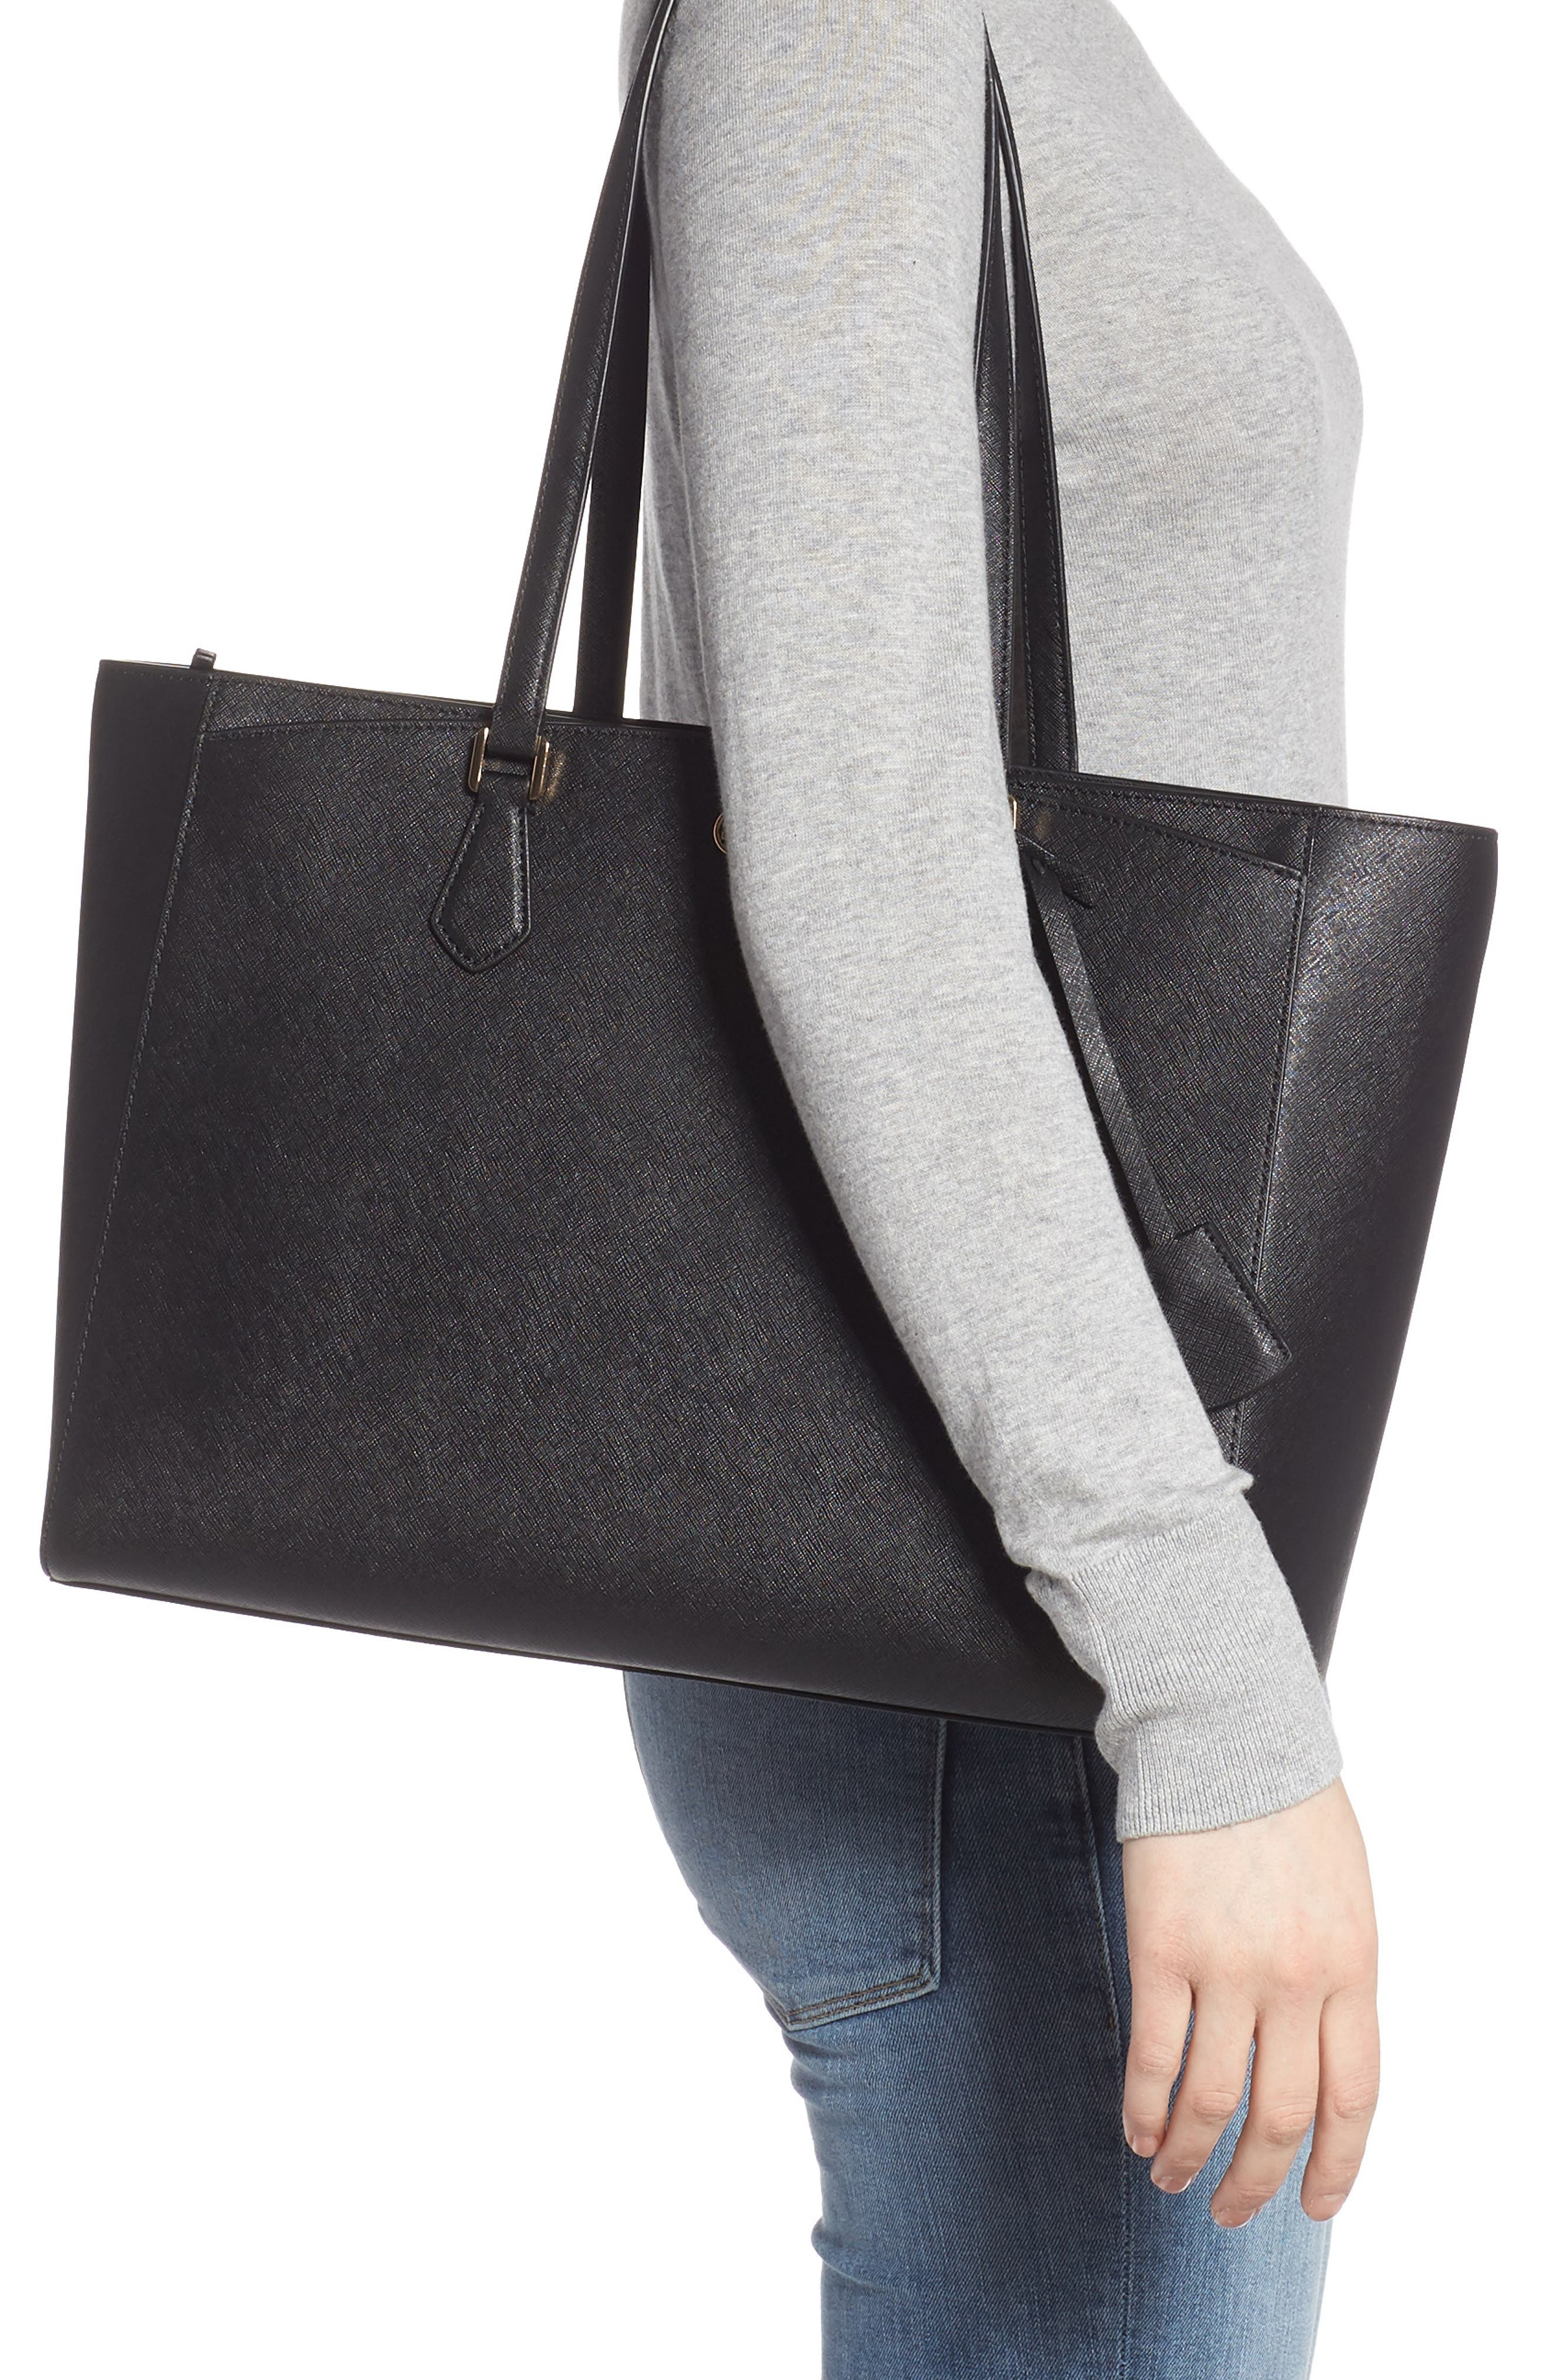 TORY BURCH, Robinson Saffiano Leather Tote, Alternate thumbnail 2, color, BLACK